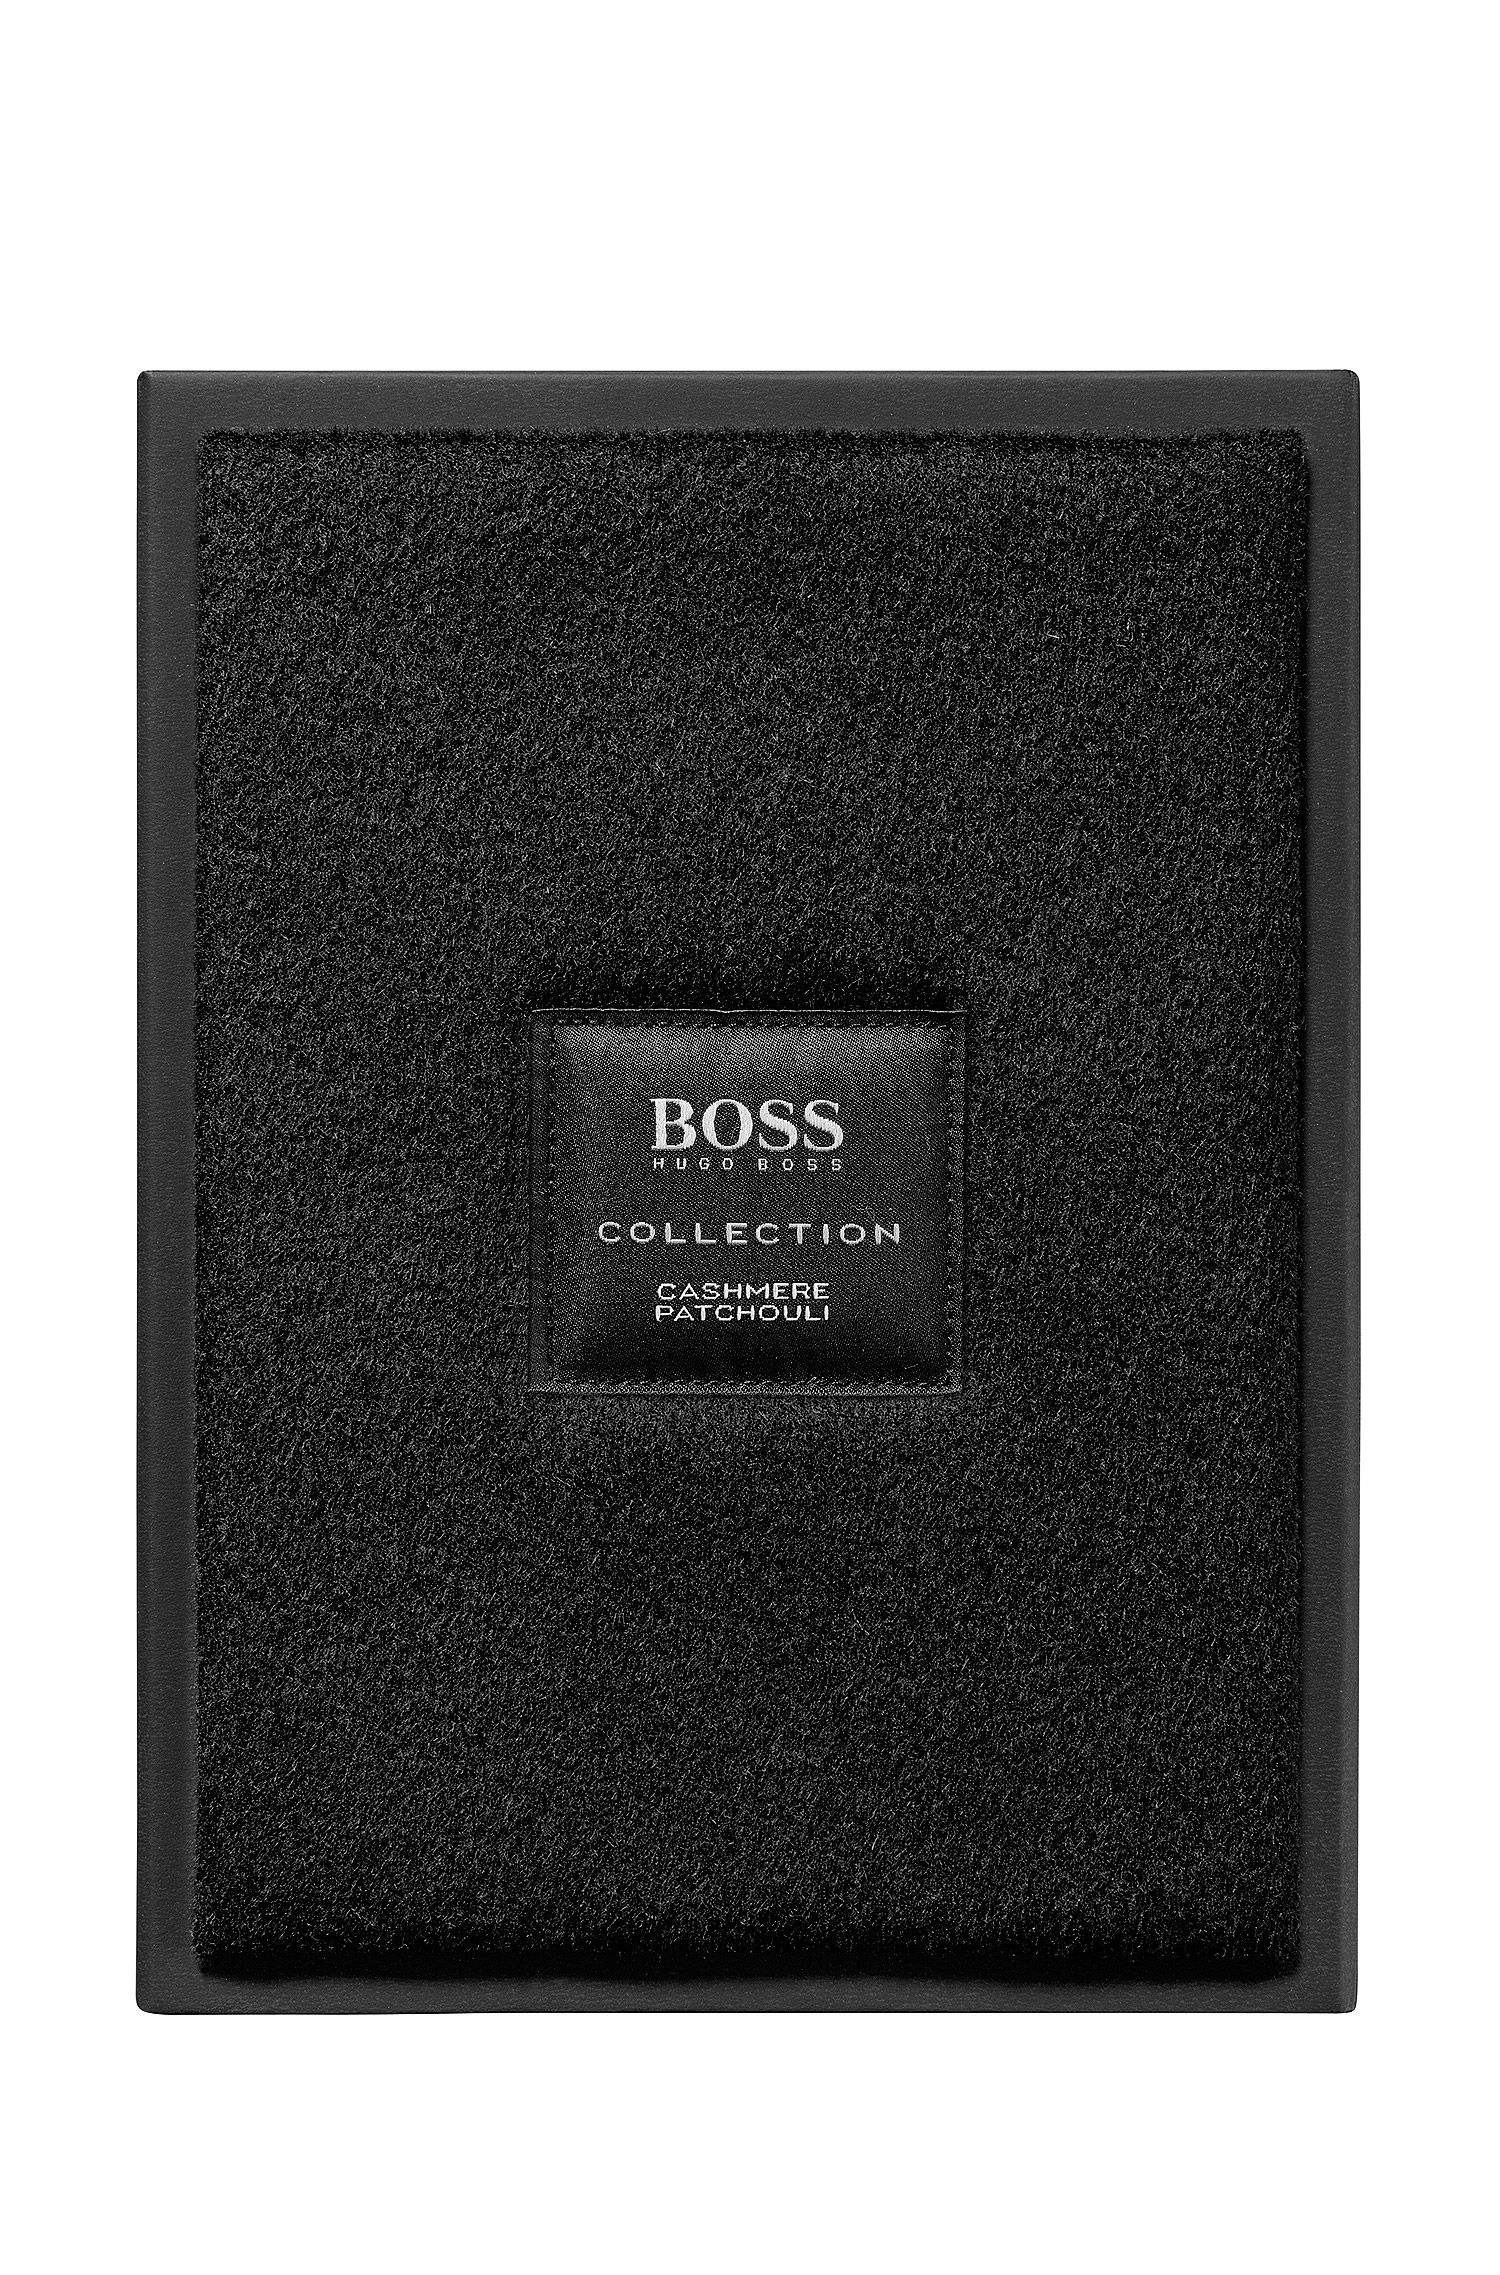 BOSS The Collection - Eau de Parfum Cashmere Patchouli